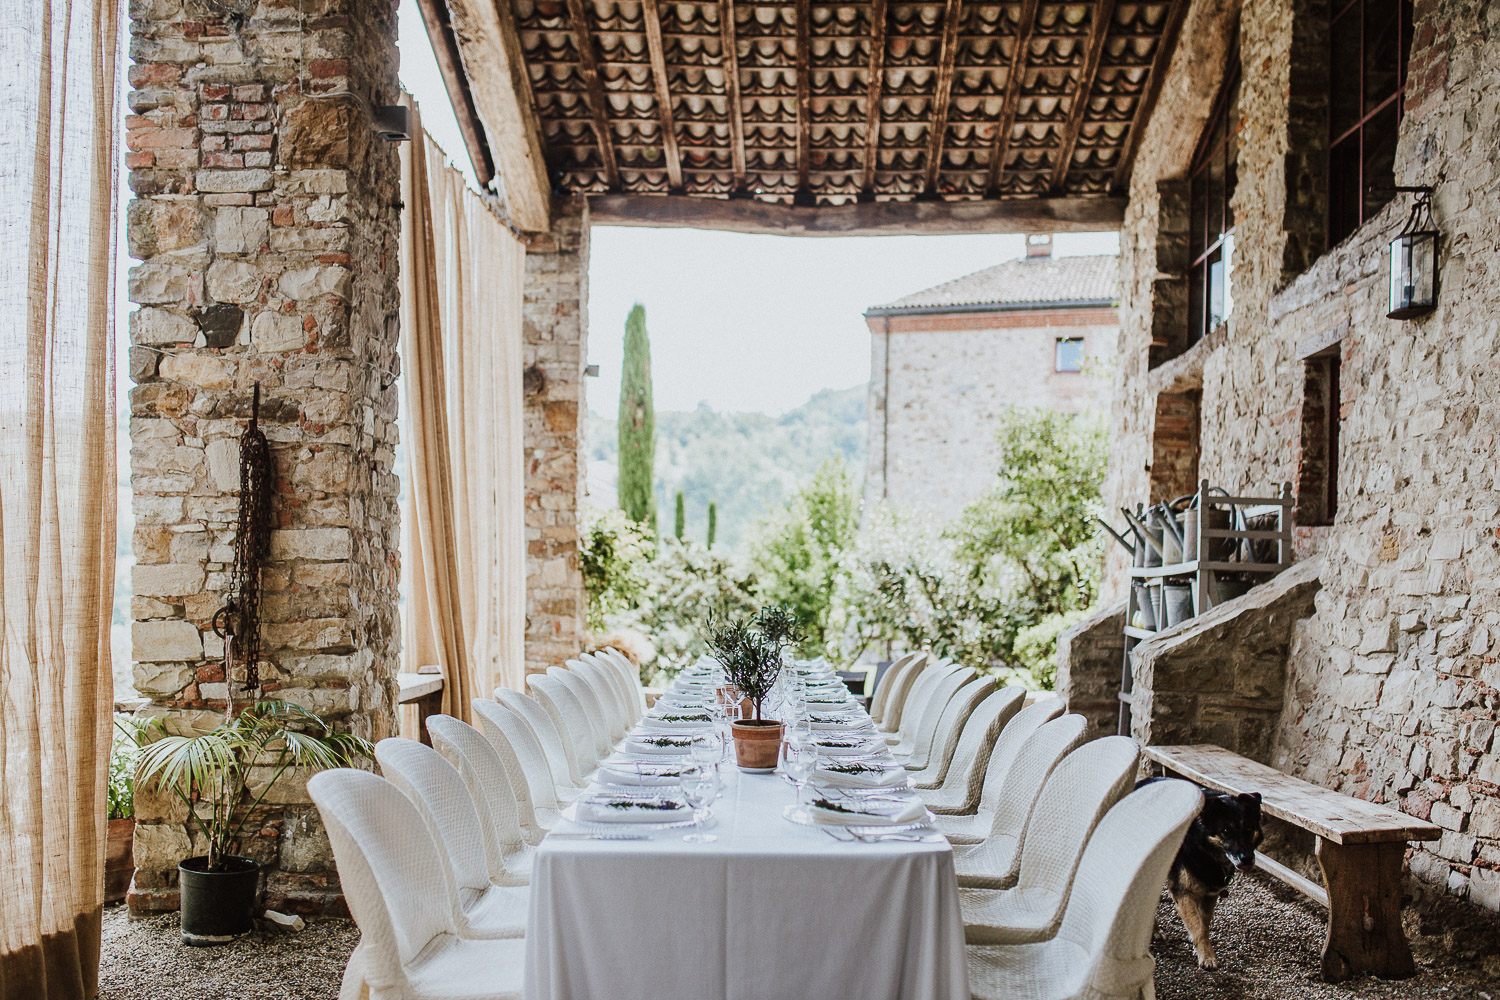 Imperial table wedding under a pergola in an ancient castle in Italy